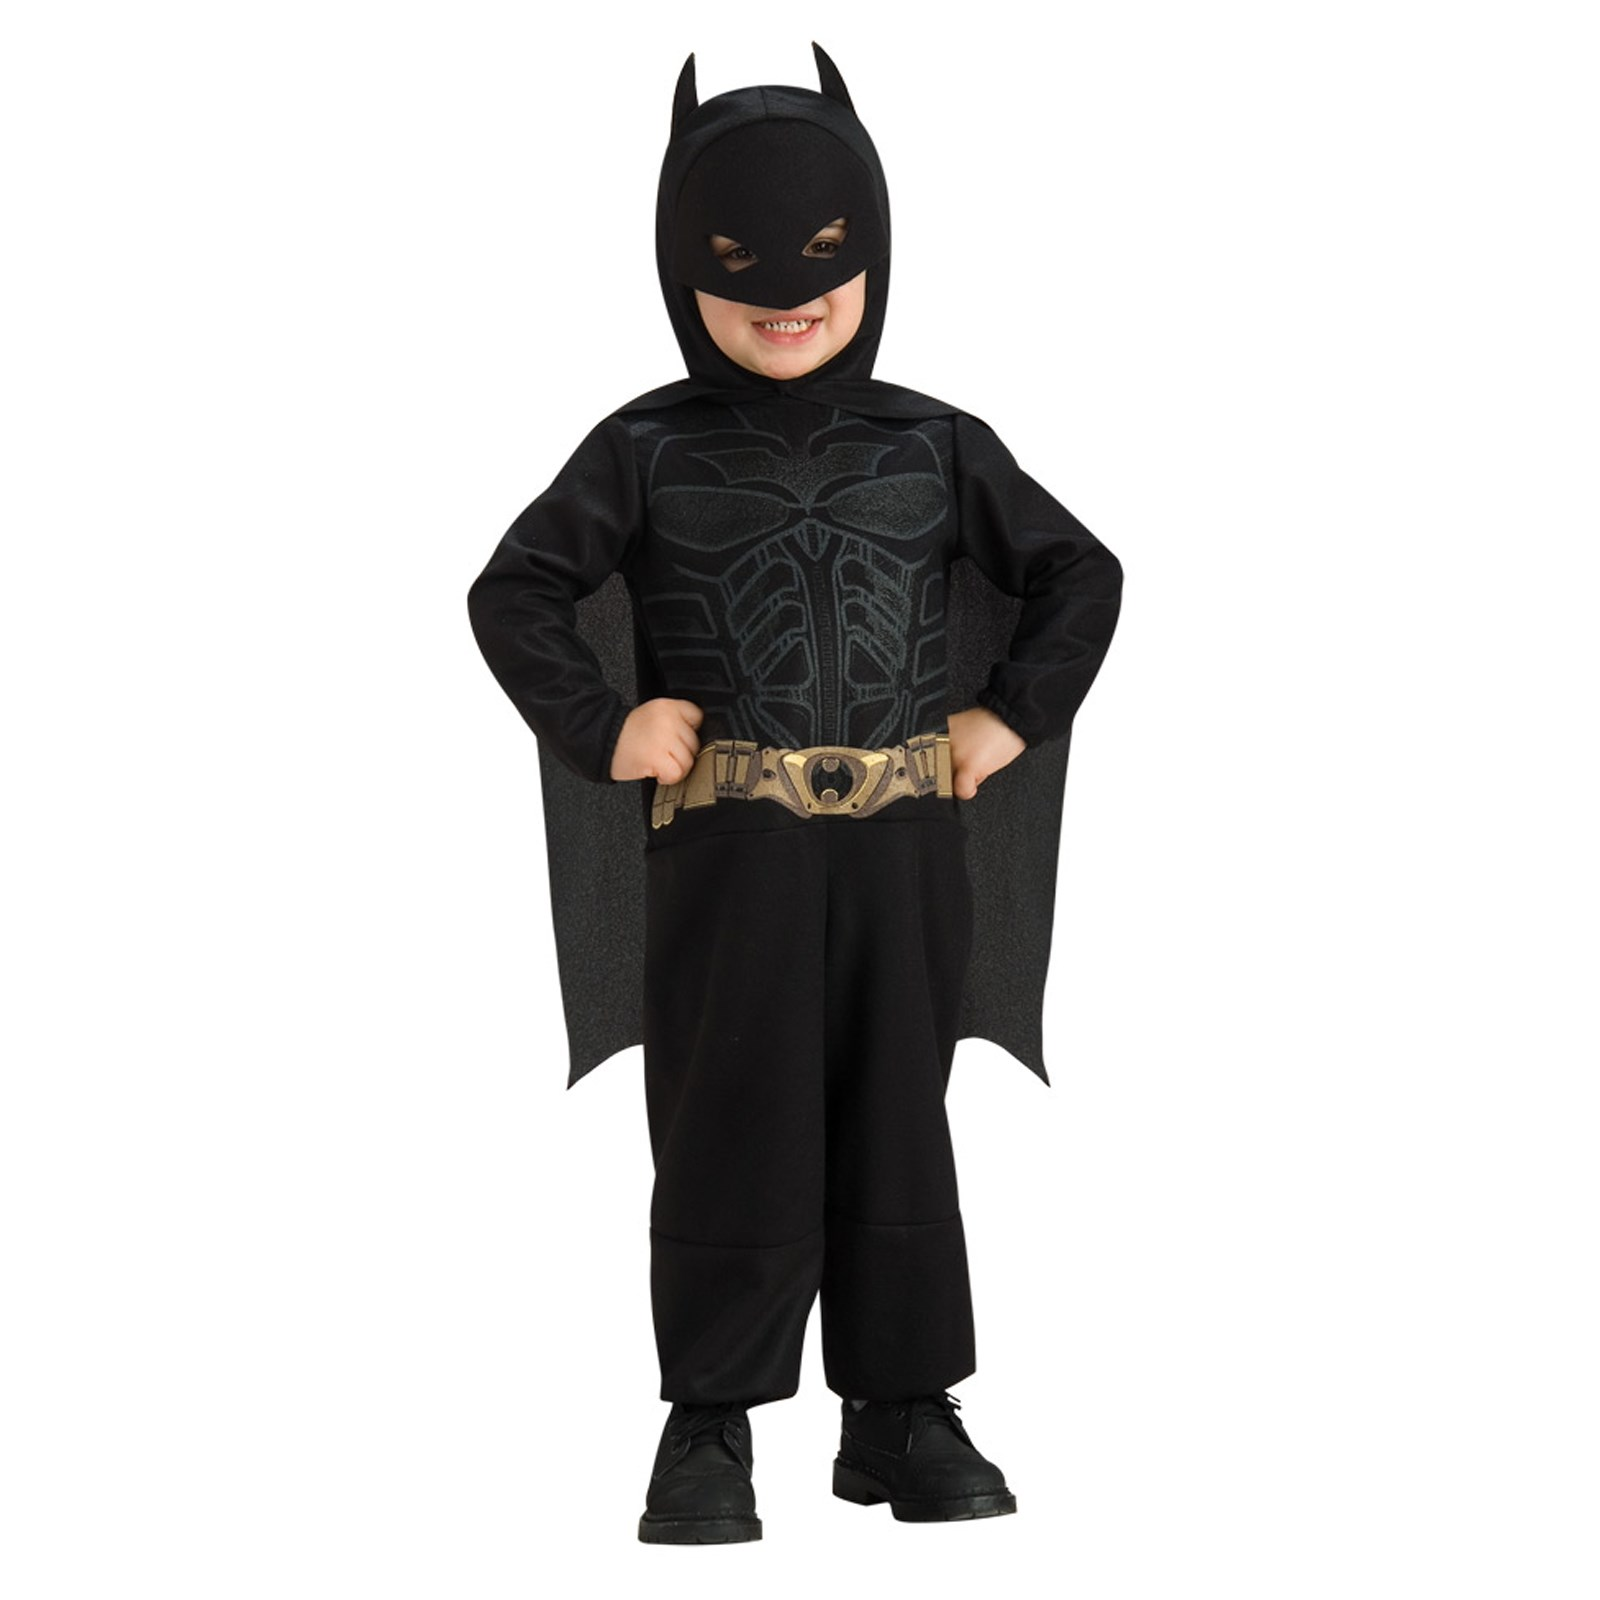 Batman The Dark Knight Rises Toddler Costume